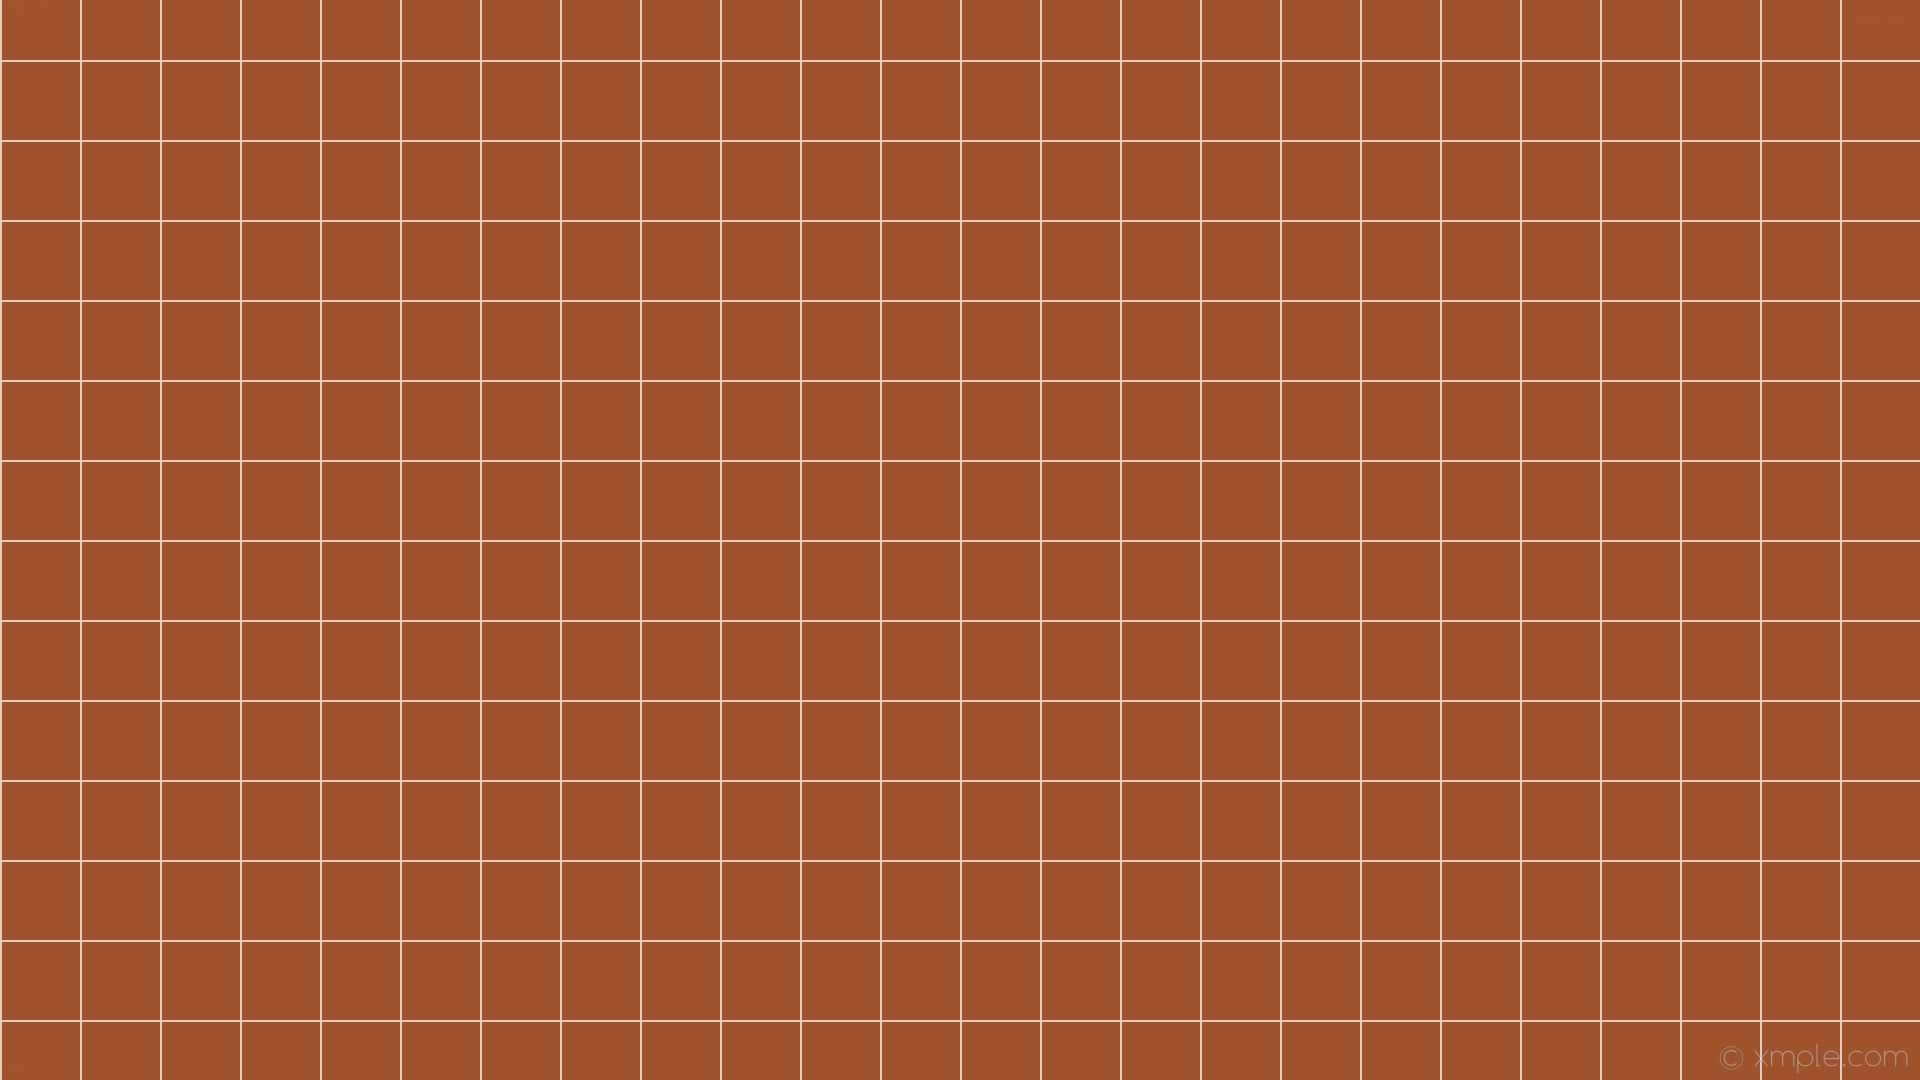 Aesthetic Brown Wallpapers   Top Aesthetic Brown Backgrounds 1920x1080